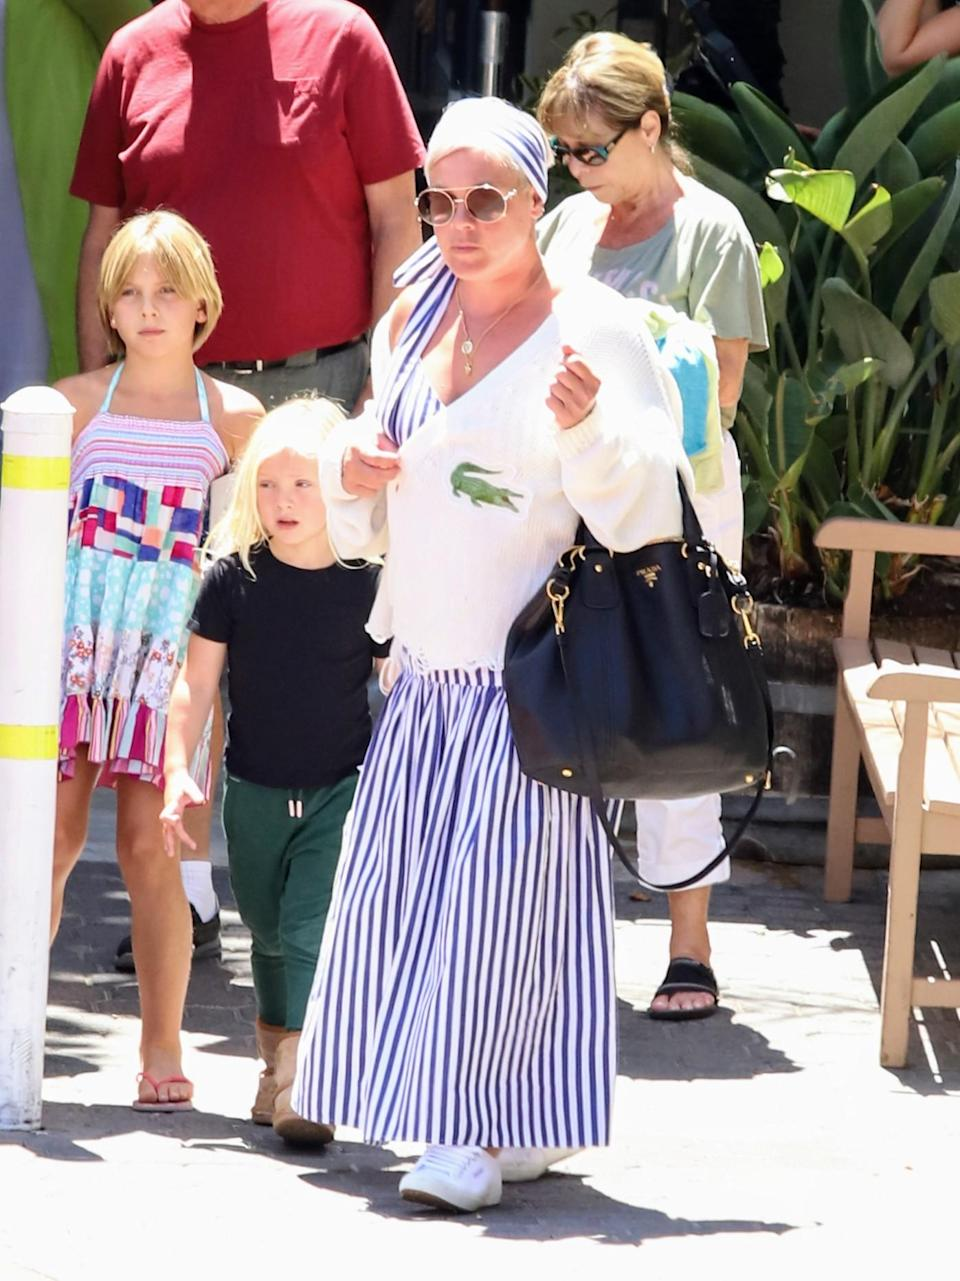 Pink seen having lunch with her parents in Malibu, Calif. - Credit: APEX / MEGA